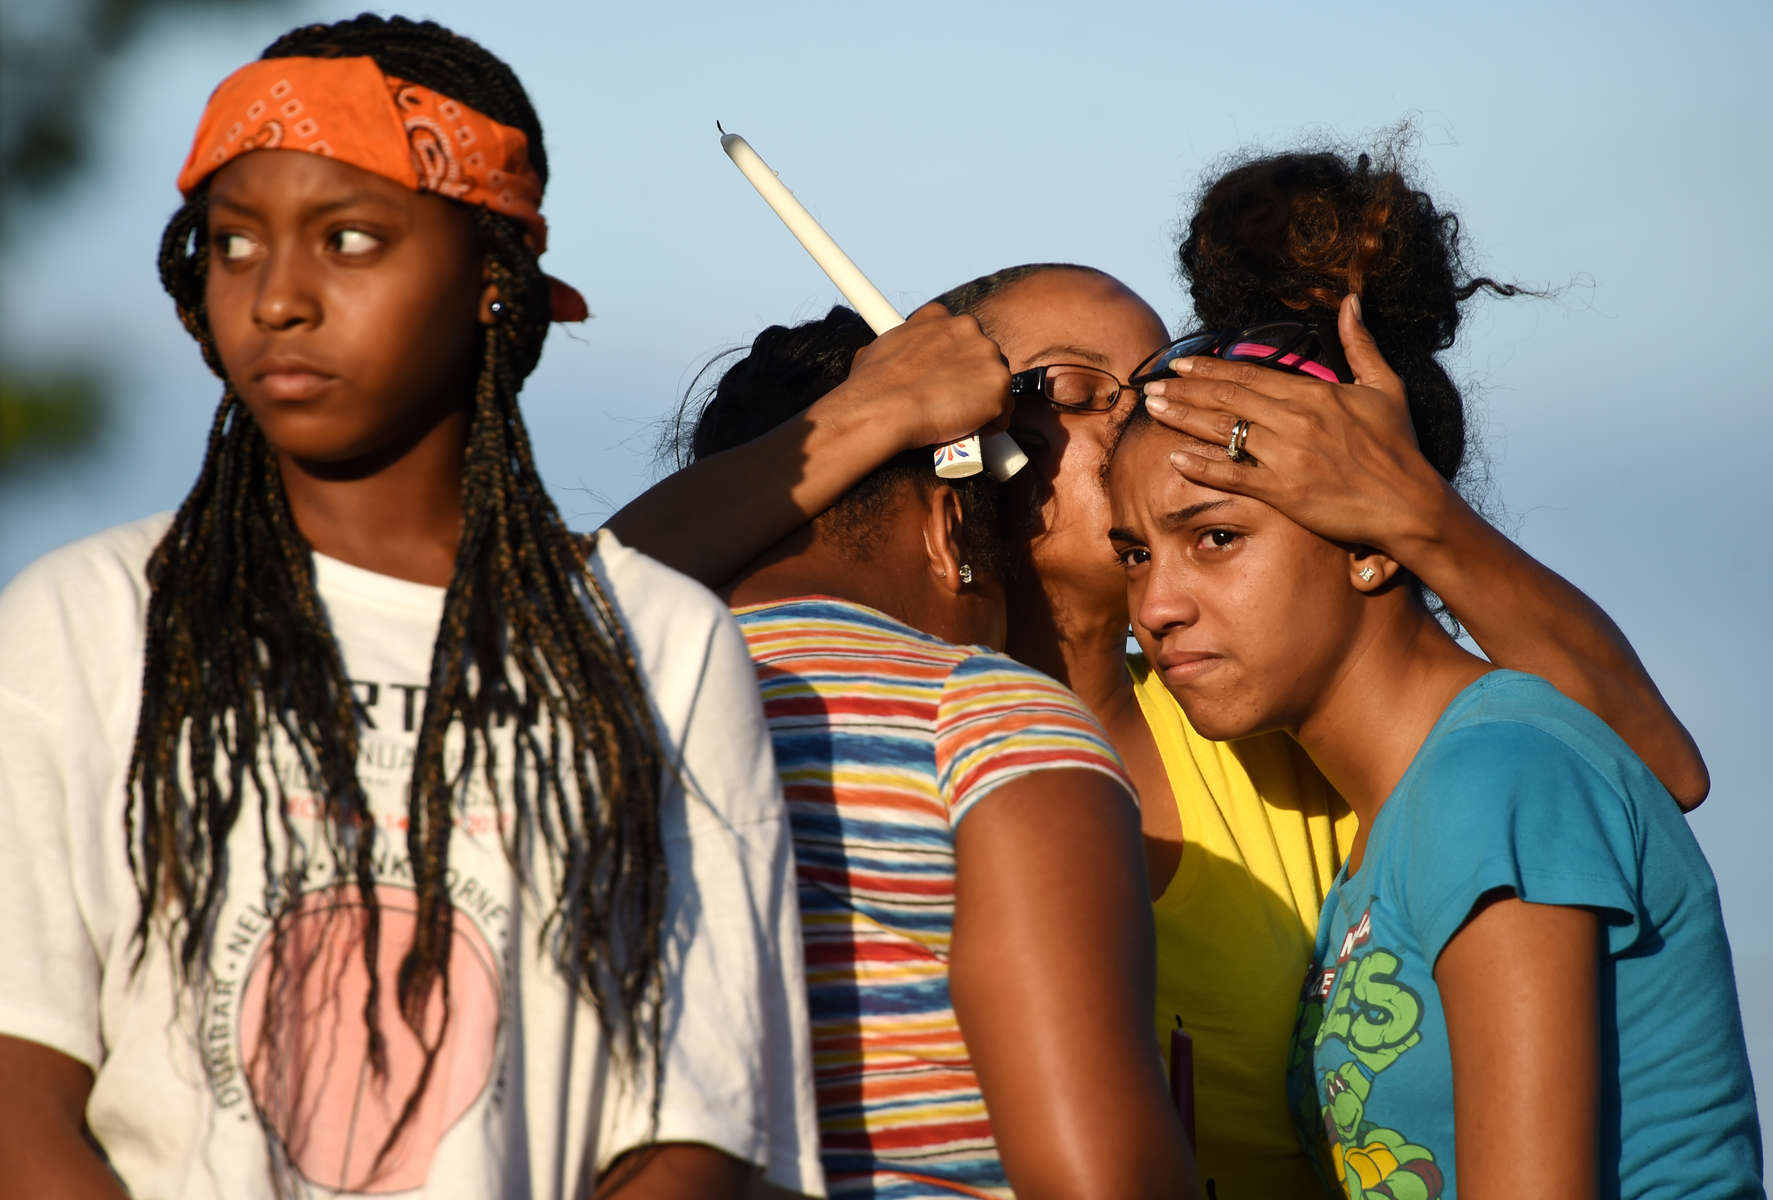 Relatives of Lawrence Maliek Giusto console each other during a vigil Monday evening in Lynchburg. Giusto was killed Sunday morning in a drive-by shooting on Shaffer Street. (Photo by by Max Oden / The News & Advance)